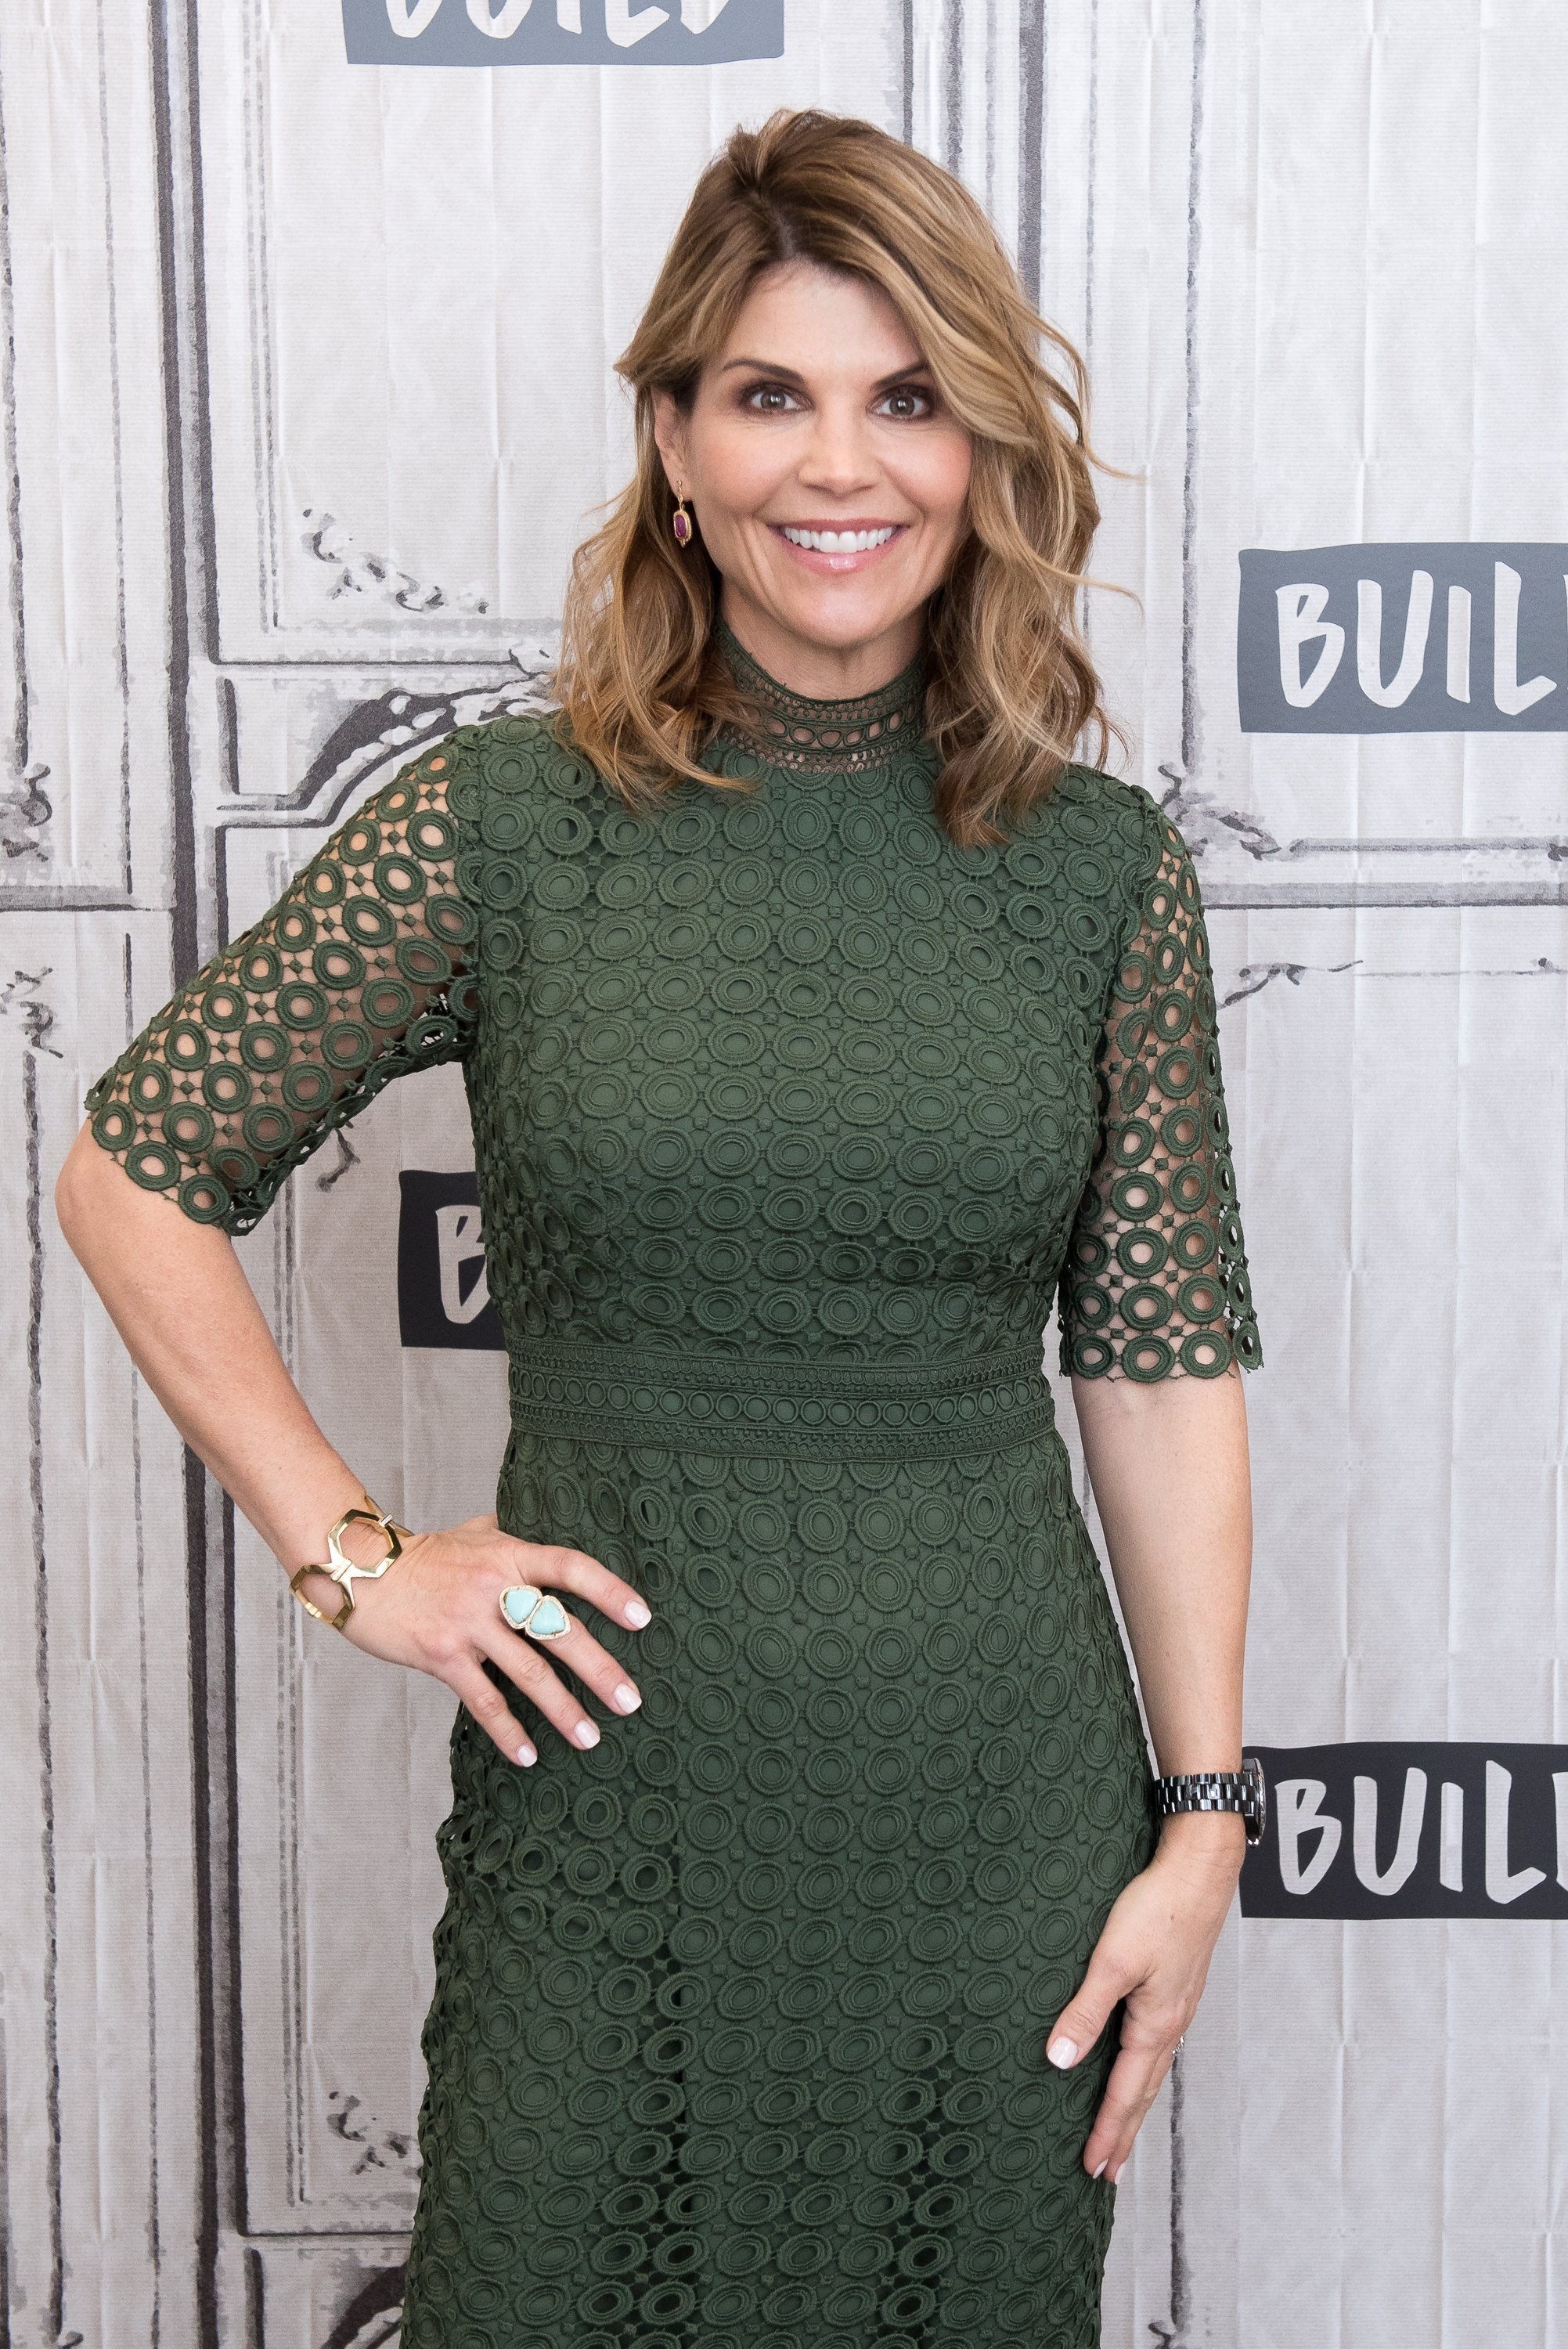 Lori Loughlin visits Build Series at Build Studio on February 15, 2018 in New York City | Photo: Getty Images